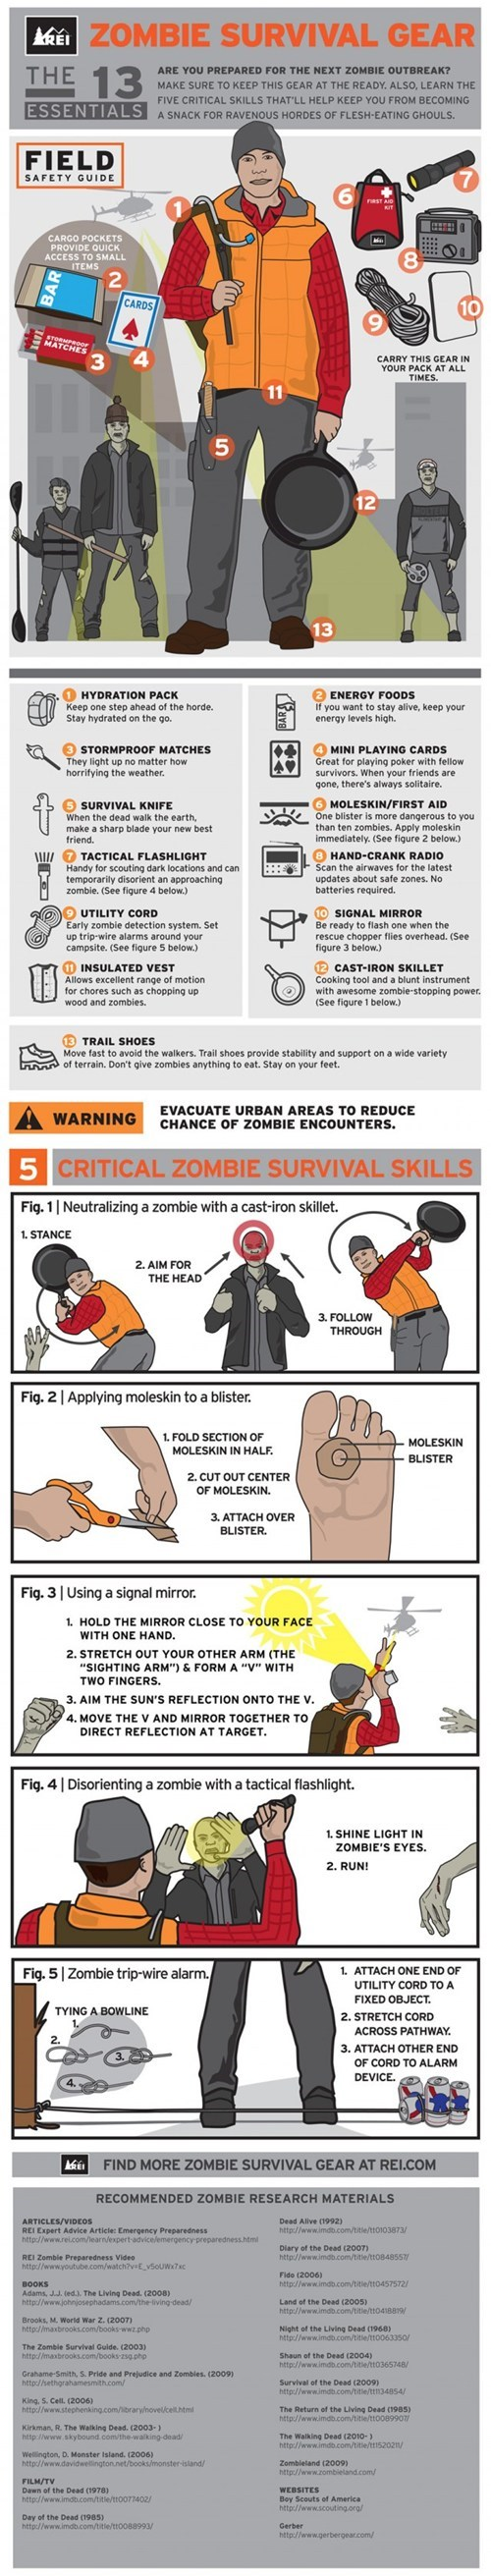 zombie survival guide,Rei,infographic